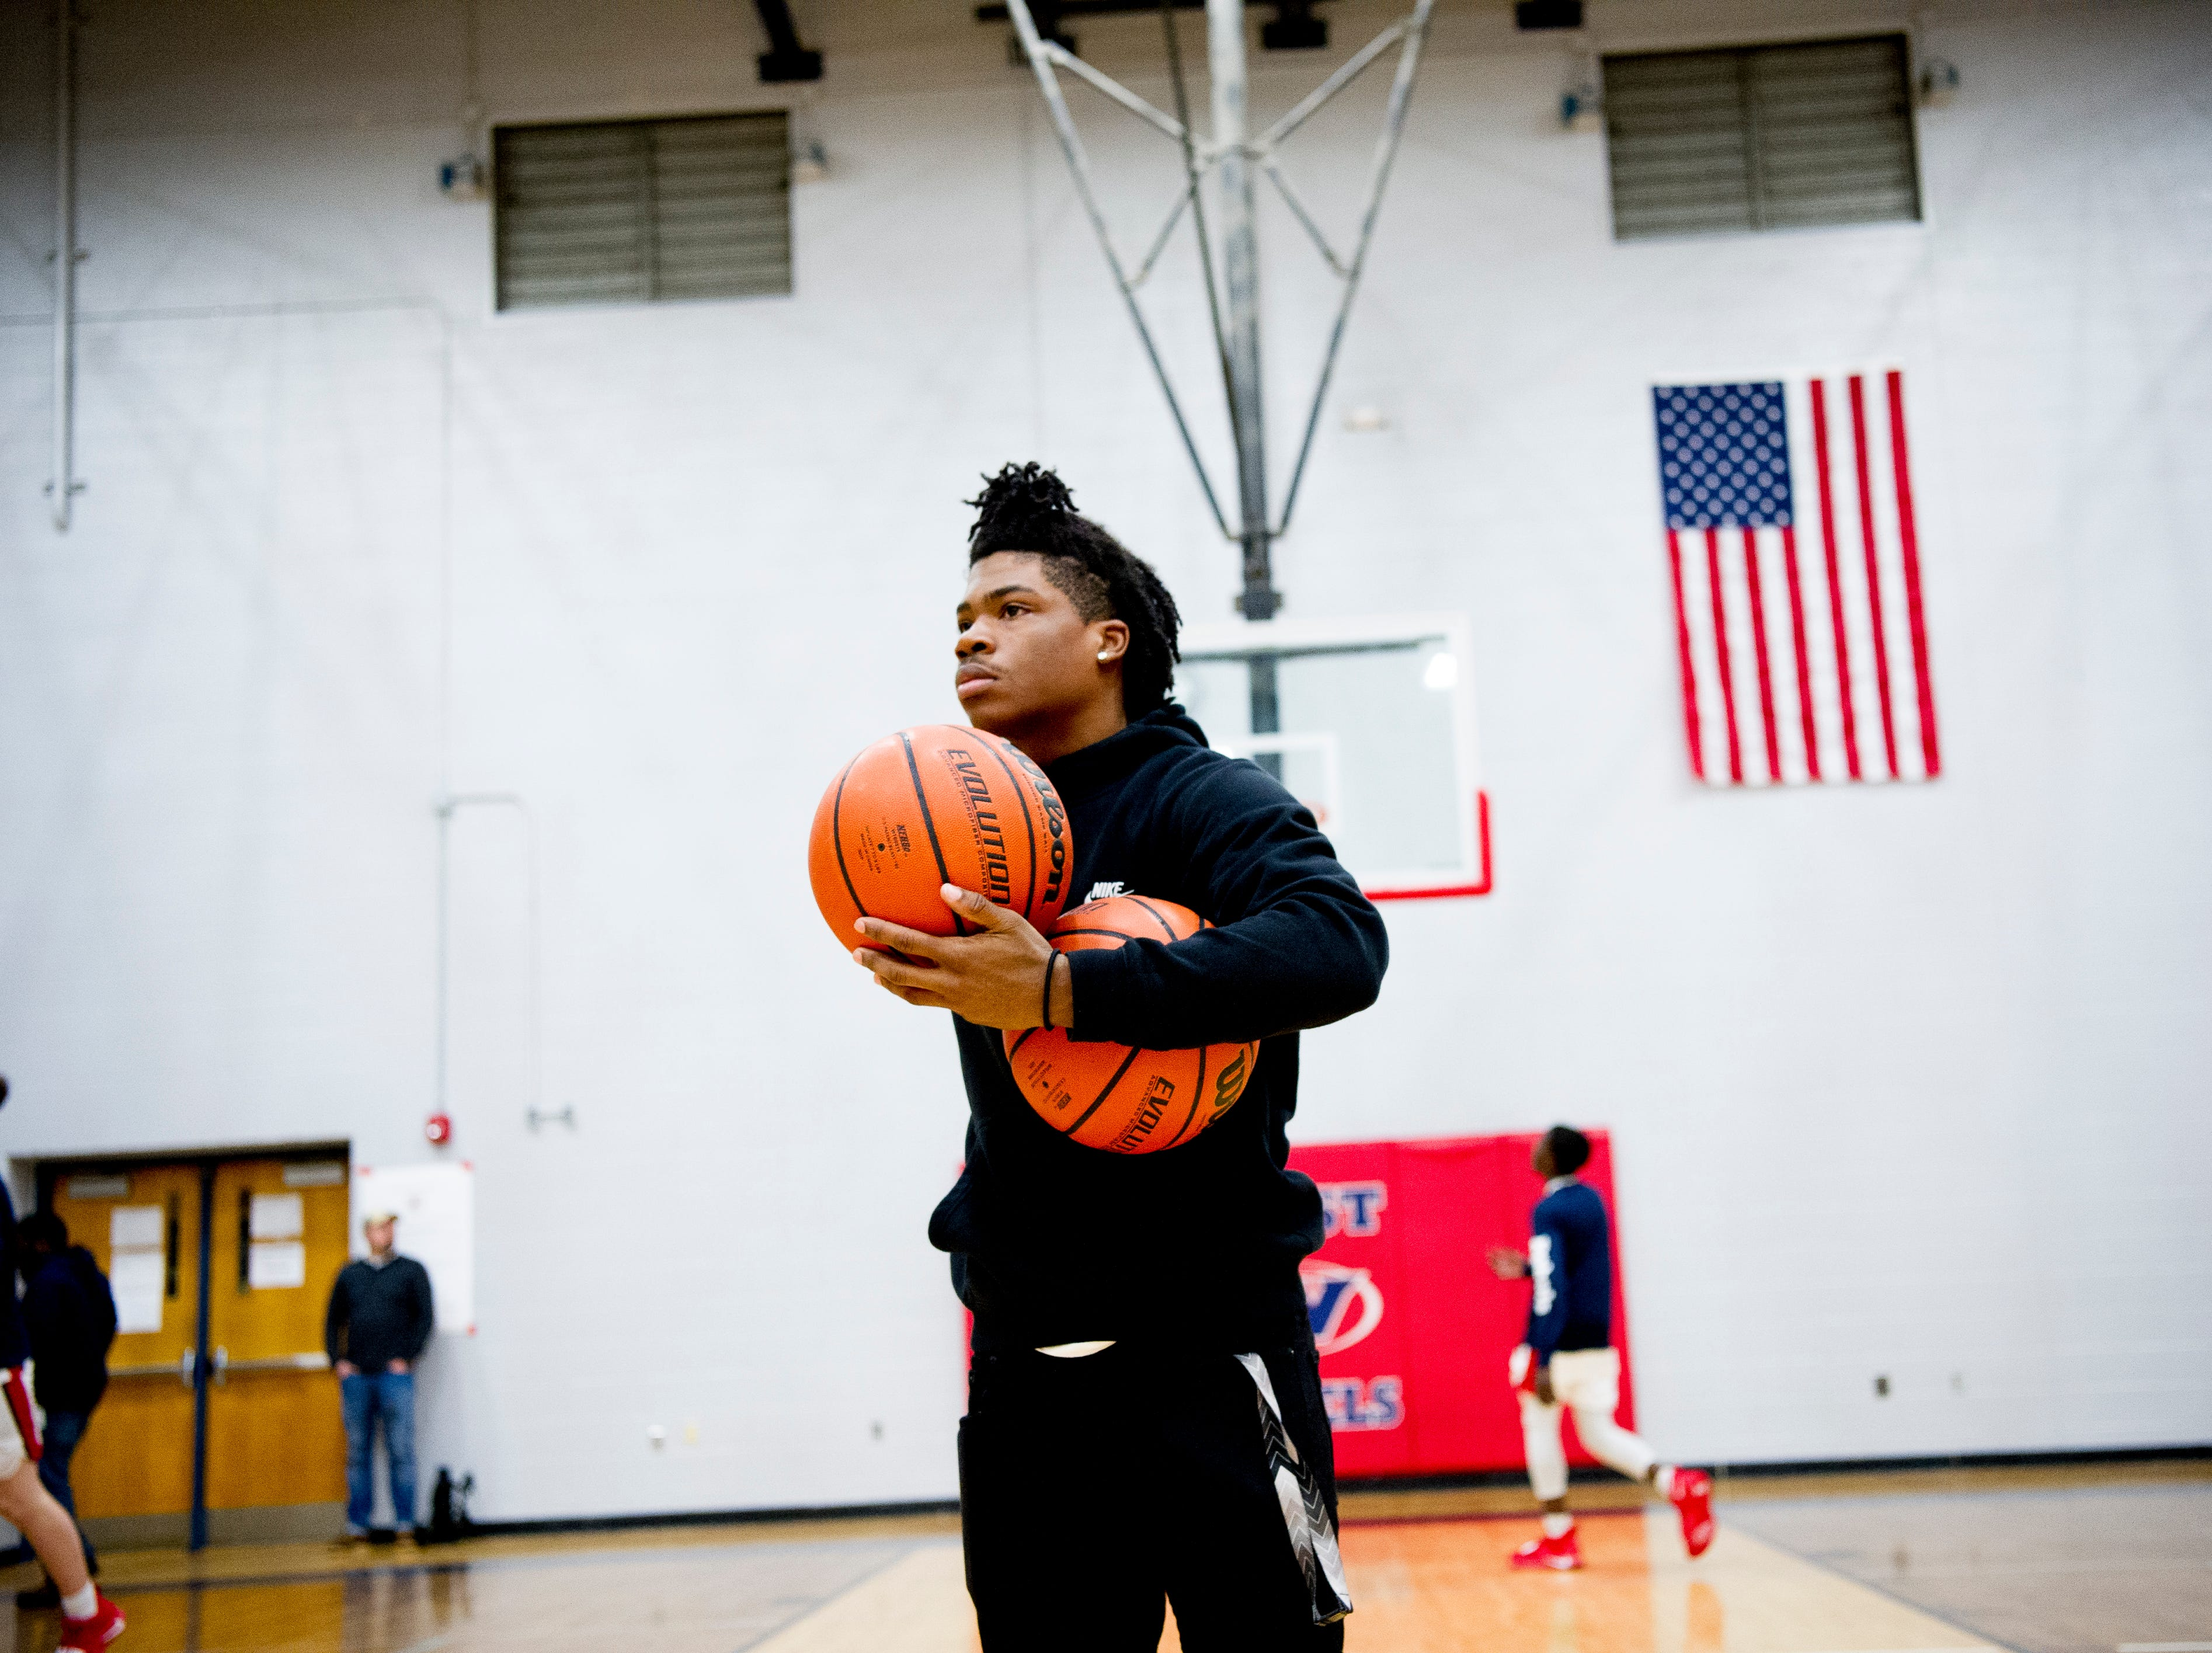 A West team member during team warm ups on the court during a game between West and Webb at West High School in Knoxville, Tennessee on Friday, January 4, 2019.